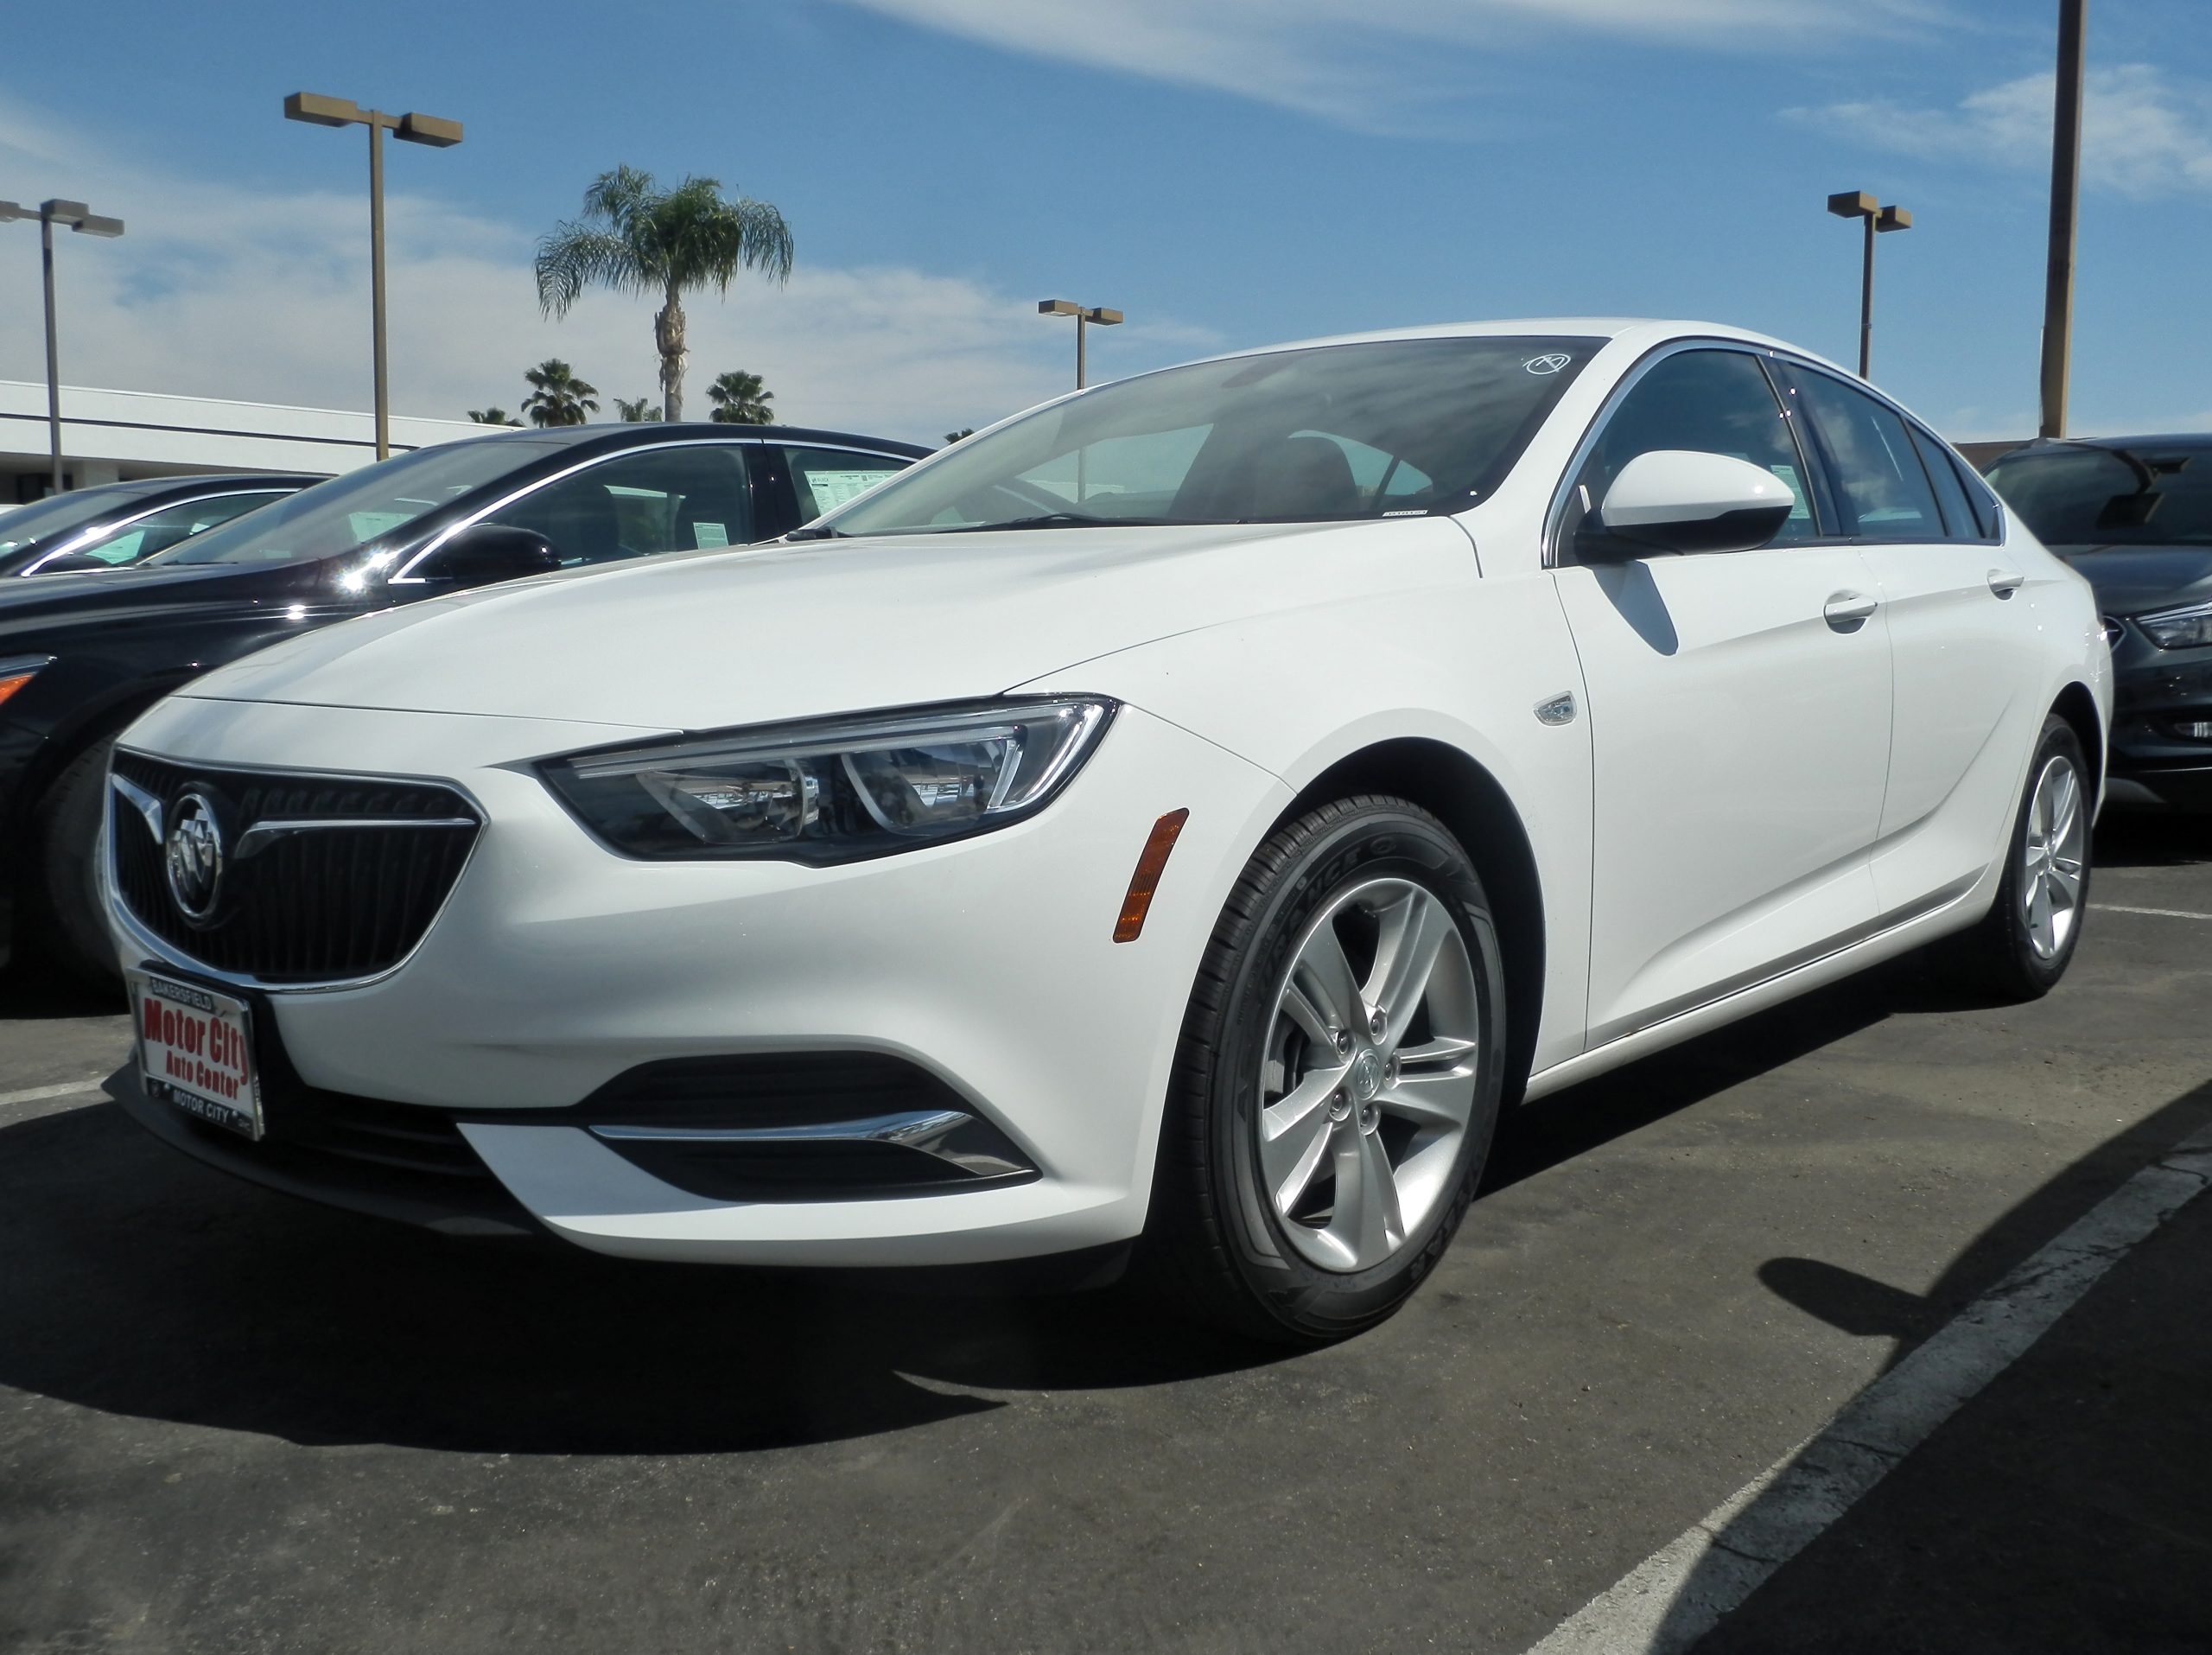 Buick Regal - Wikipedia 2022 Buick Regal Gs Review, Specs, Release Date